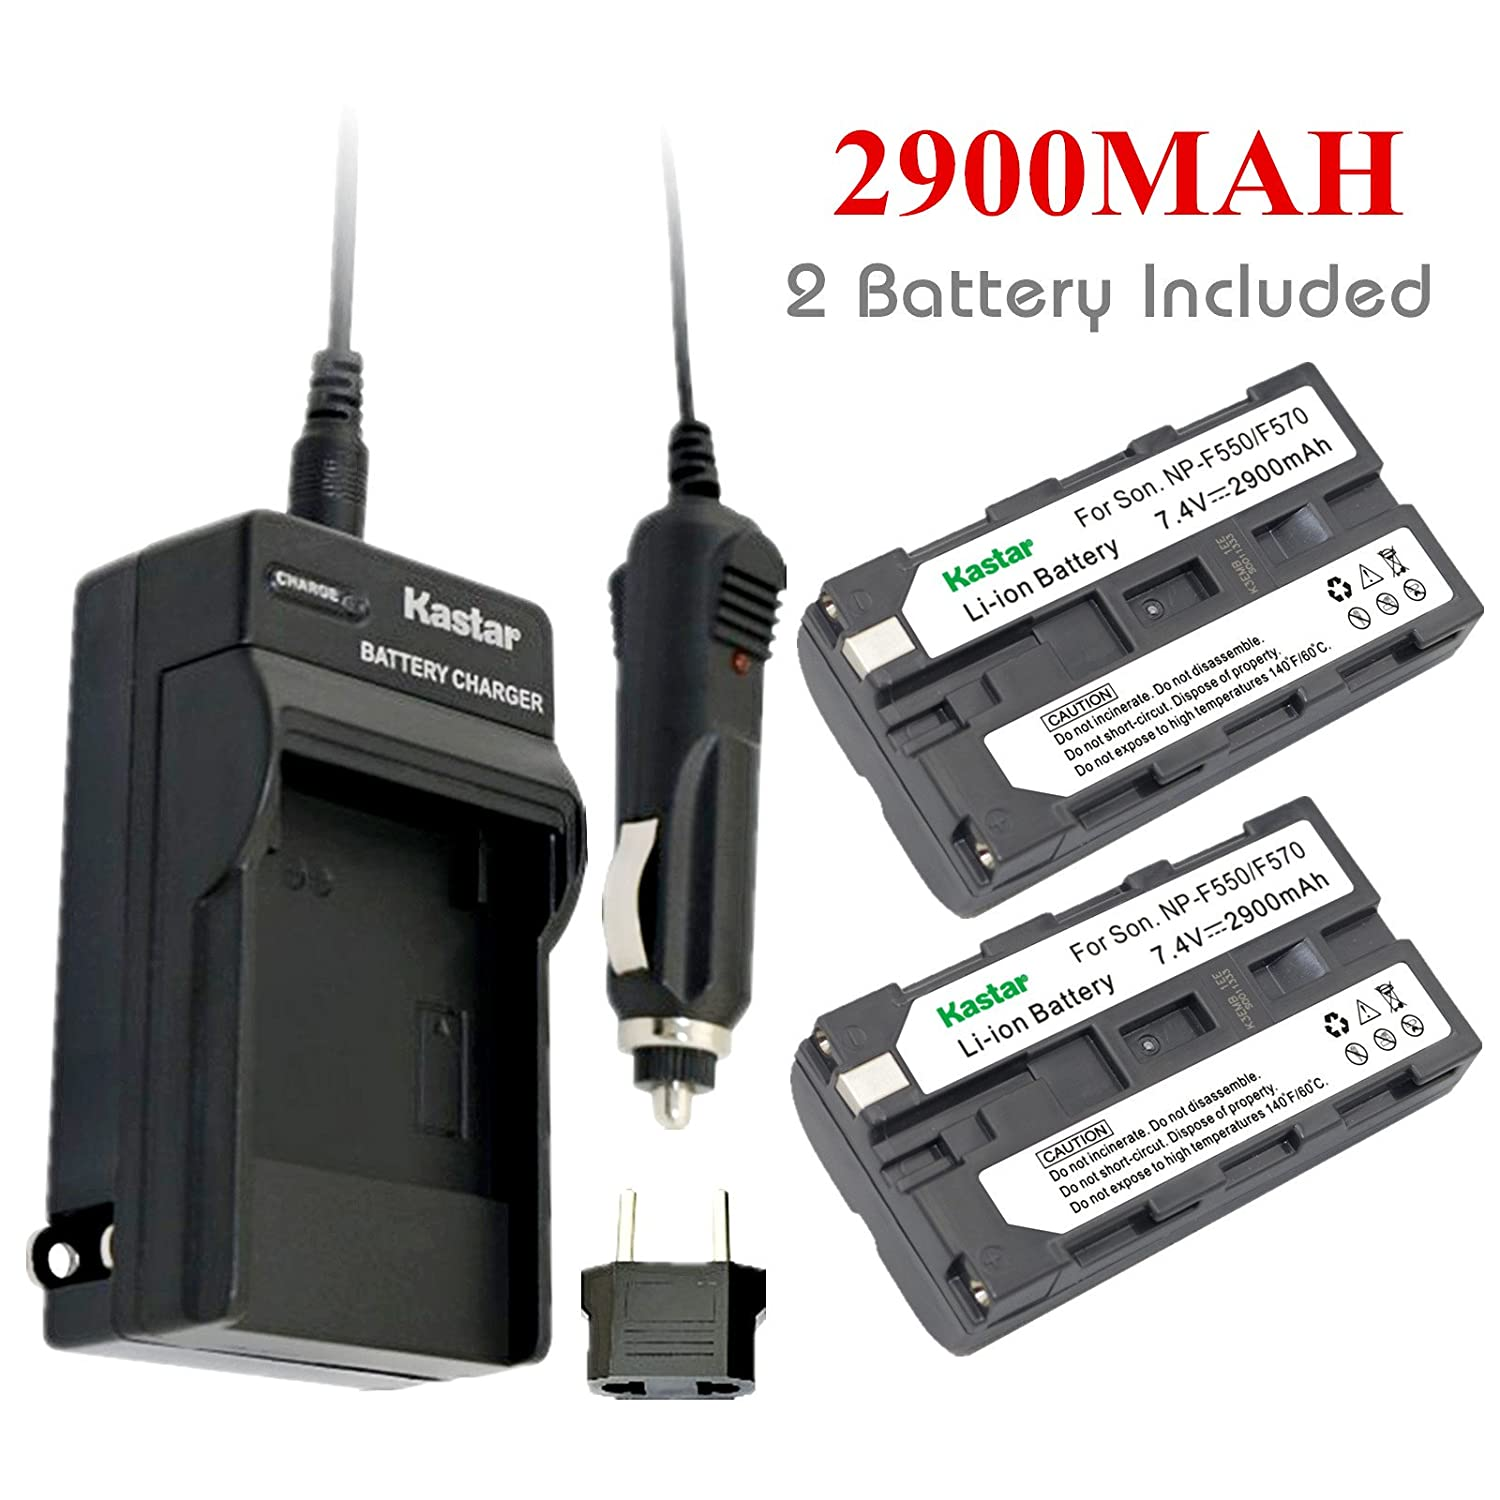 Kastar Battery and Charger for Sony NP-F570 Battery np f960 f970 6600mah battery for np f930 f950 f330 f550 f570 f750 f770 sony camera